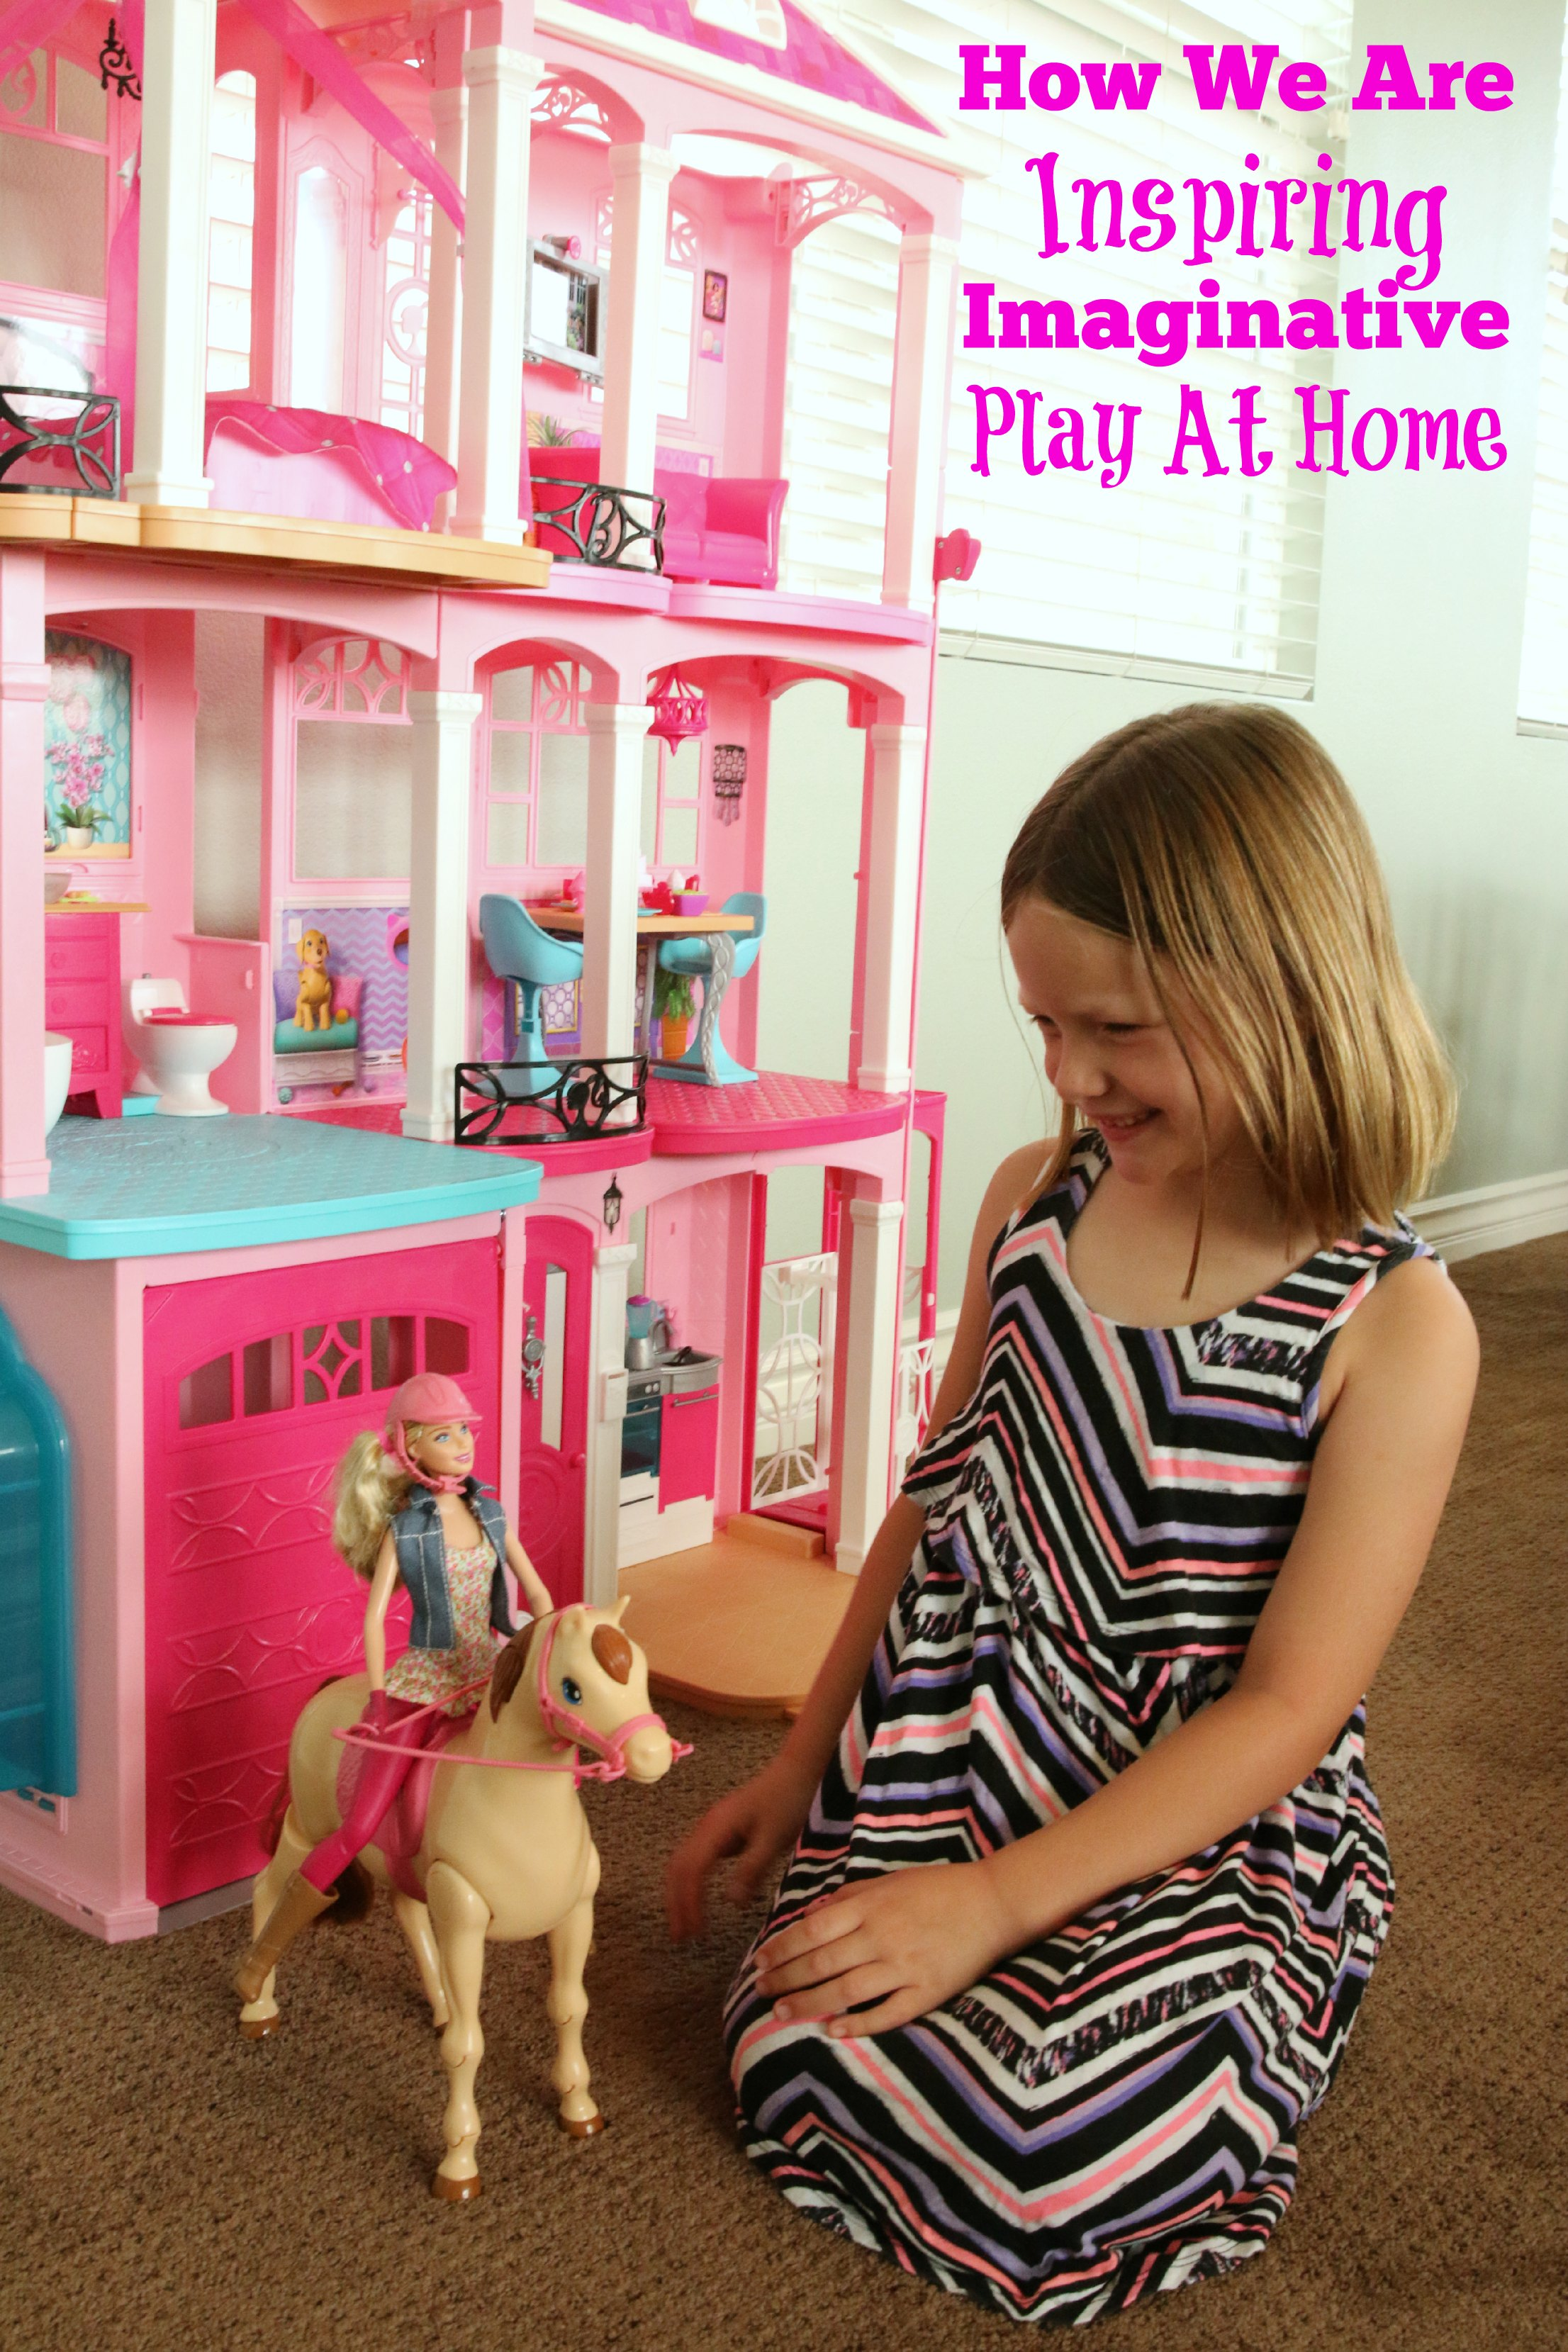 how we are inspiring imaginative play at home